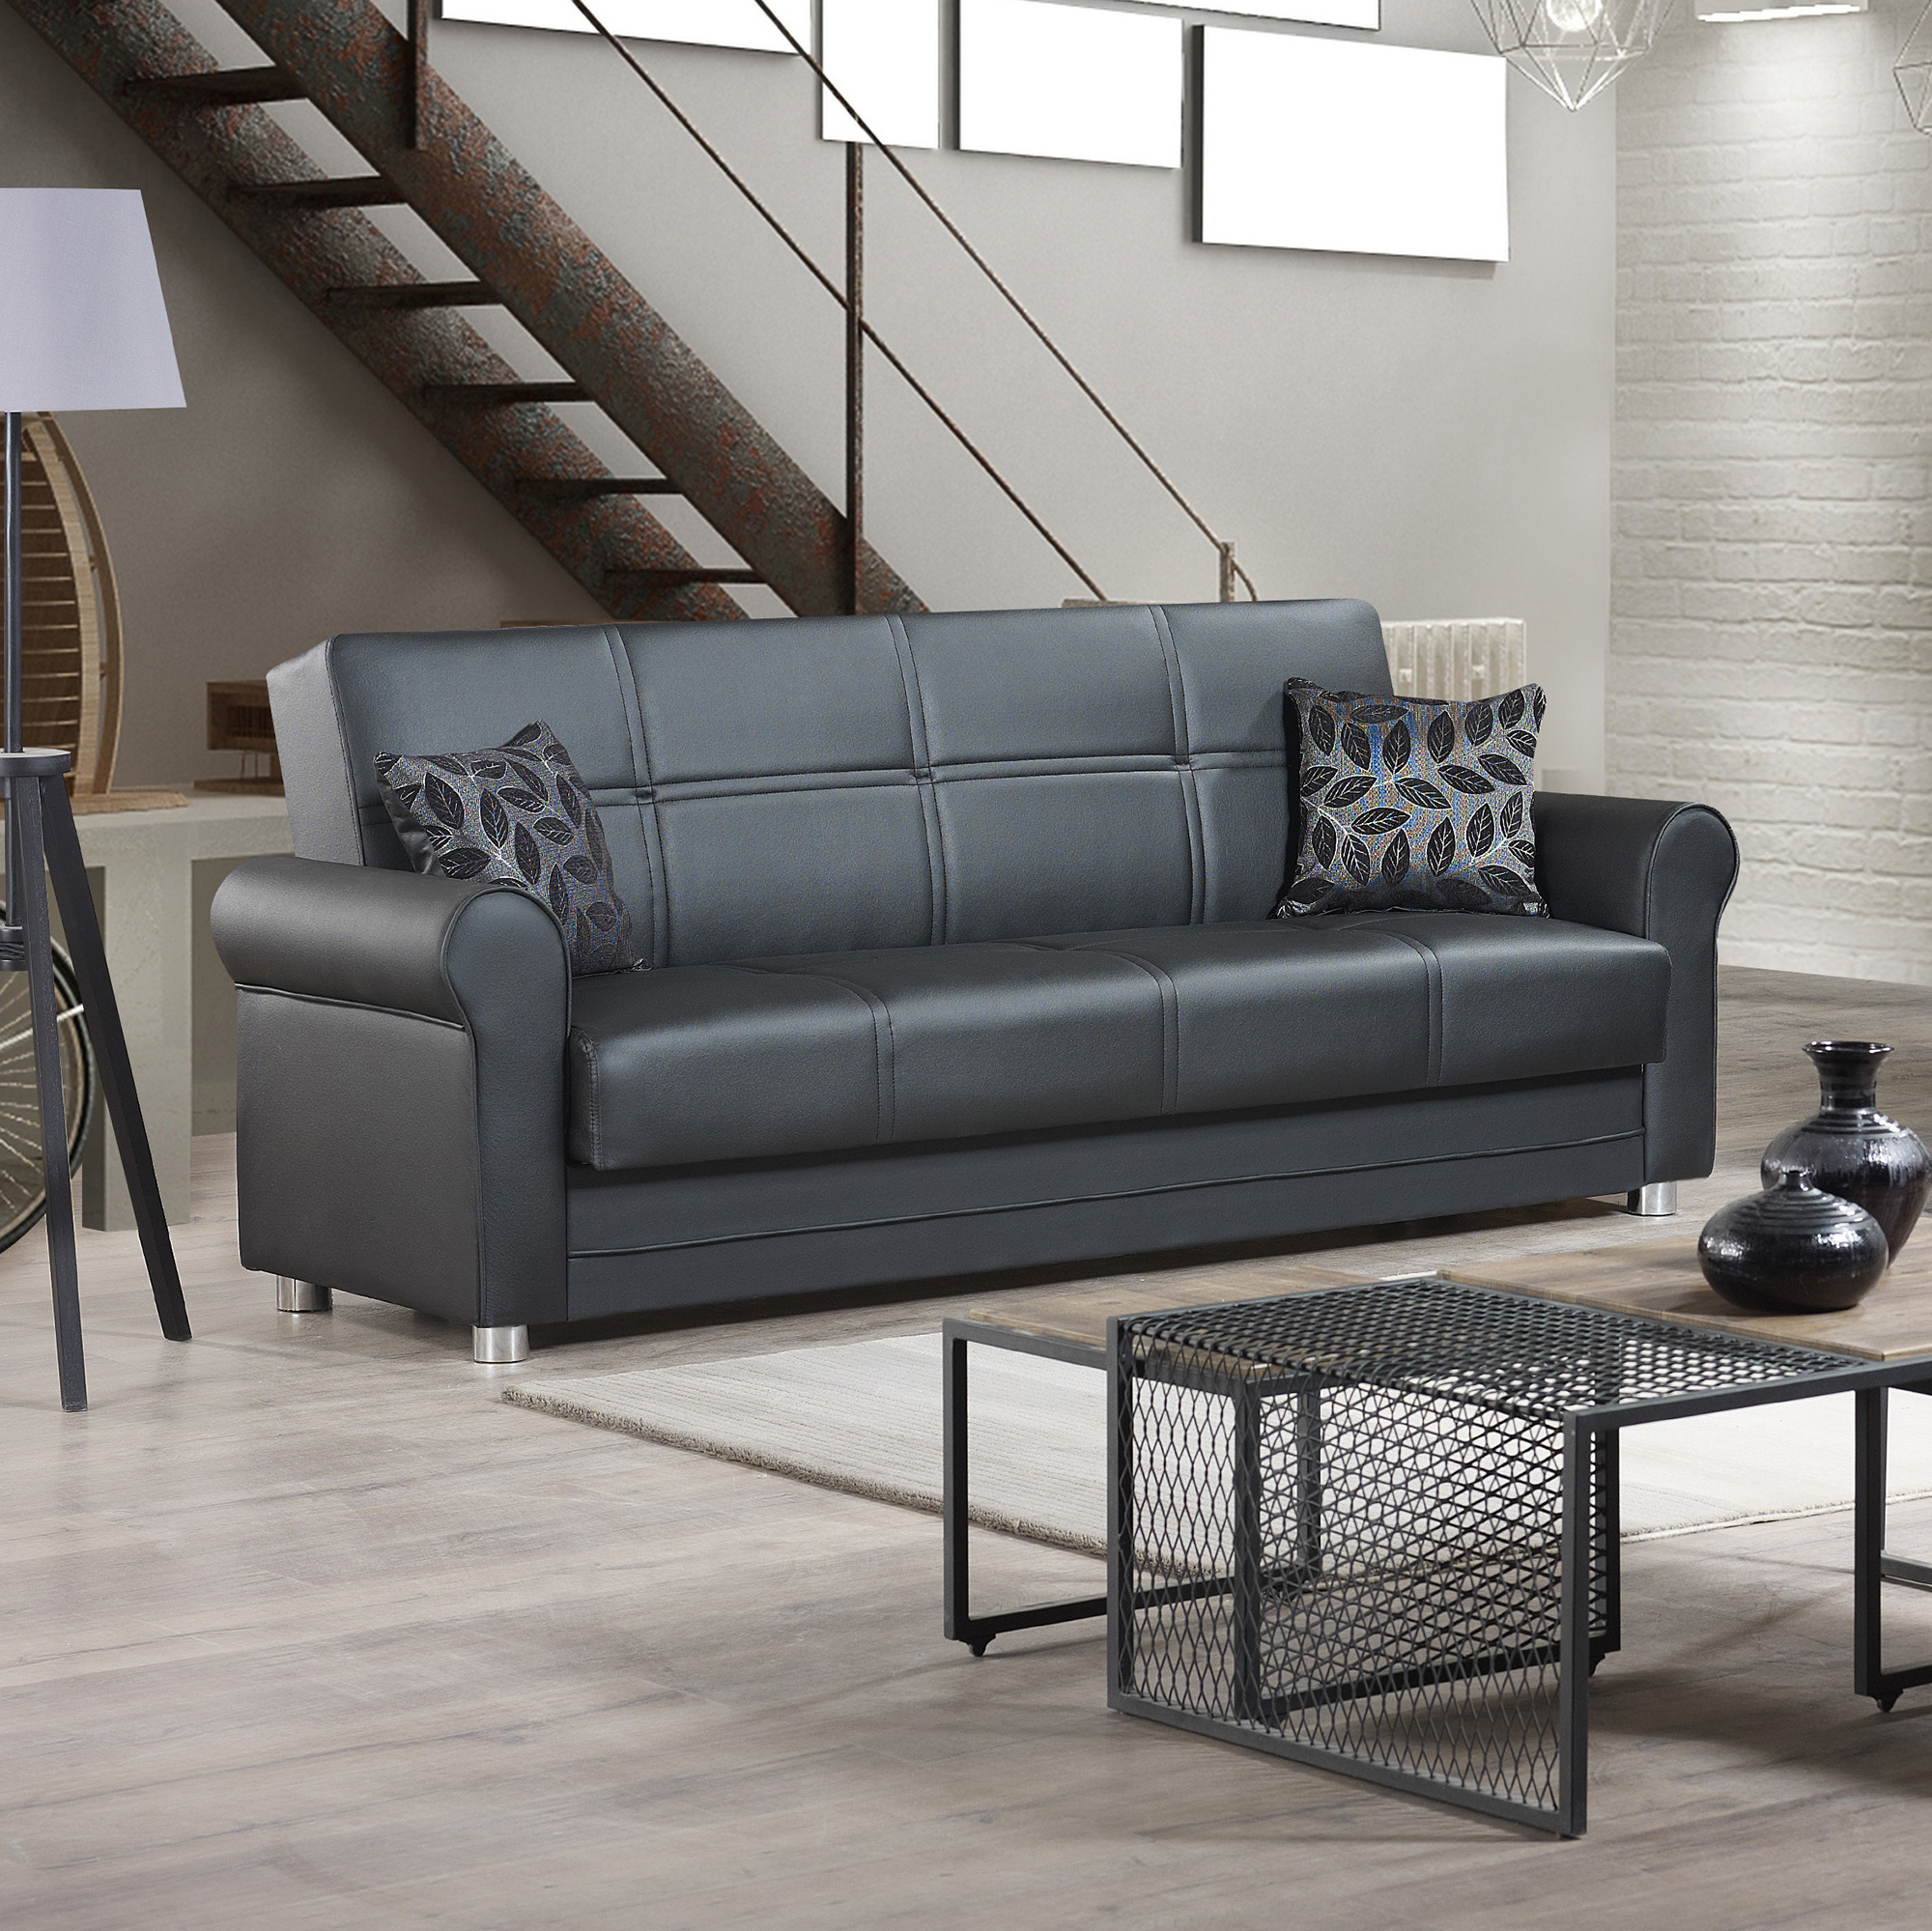 Fashionable Ottomanson Avalon Sofa Bed With Storage In Leather Inside Hartford Storage Sectional Futon Sofas (View 1 of 25)